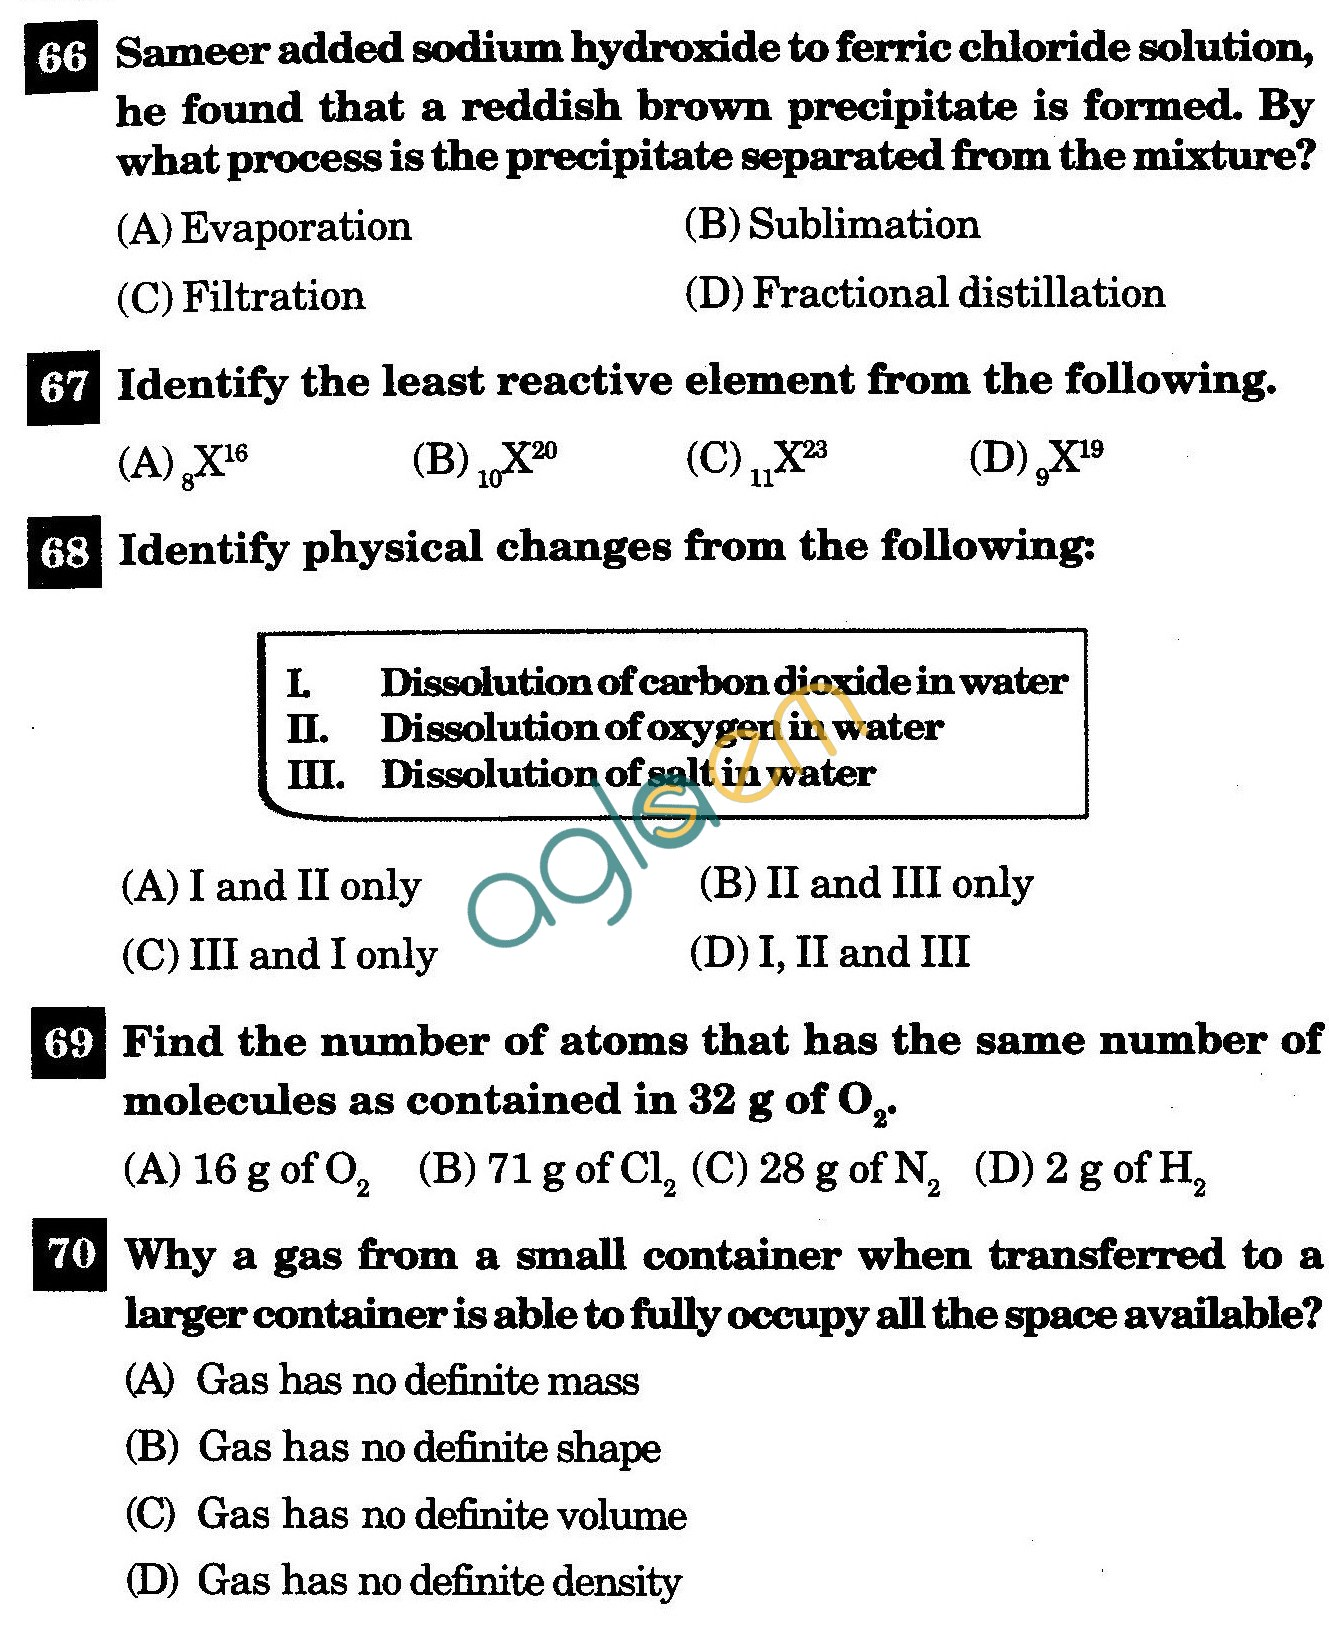 NSTSE 2011 Class IX Question Paper with Answers - Chemistry